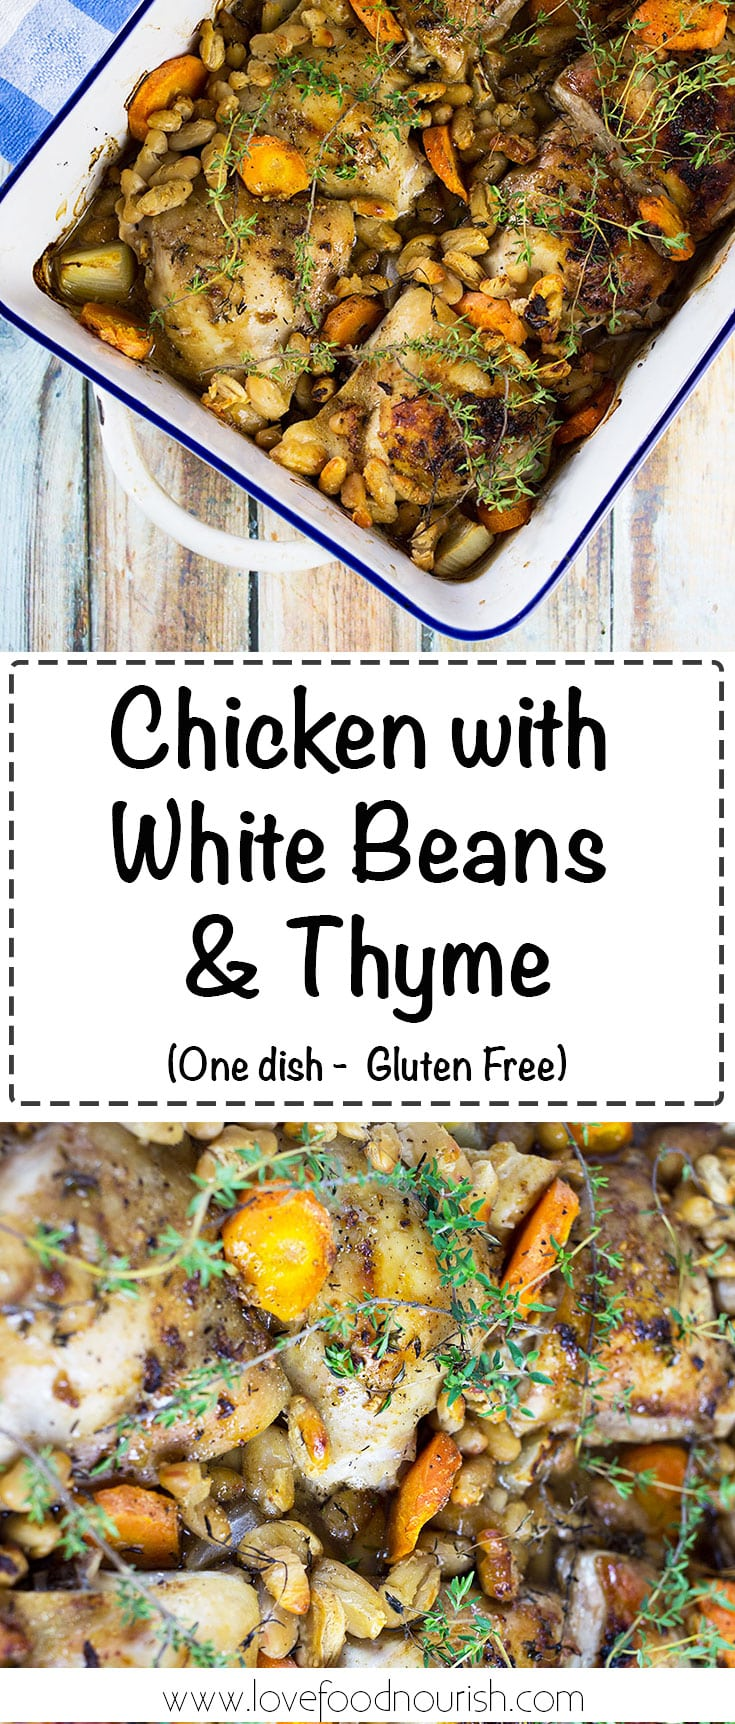 Chicken with White Beans and Thyme - A simple rustic one dish chicken meal that is full of flavour. #glutenfree #glutenfreedinner #onepan #dairyfree